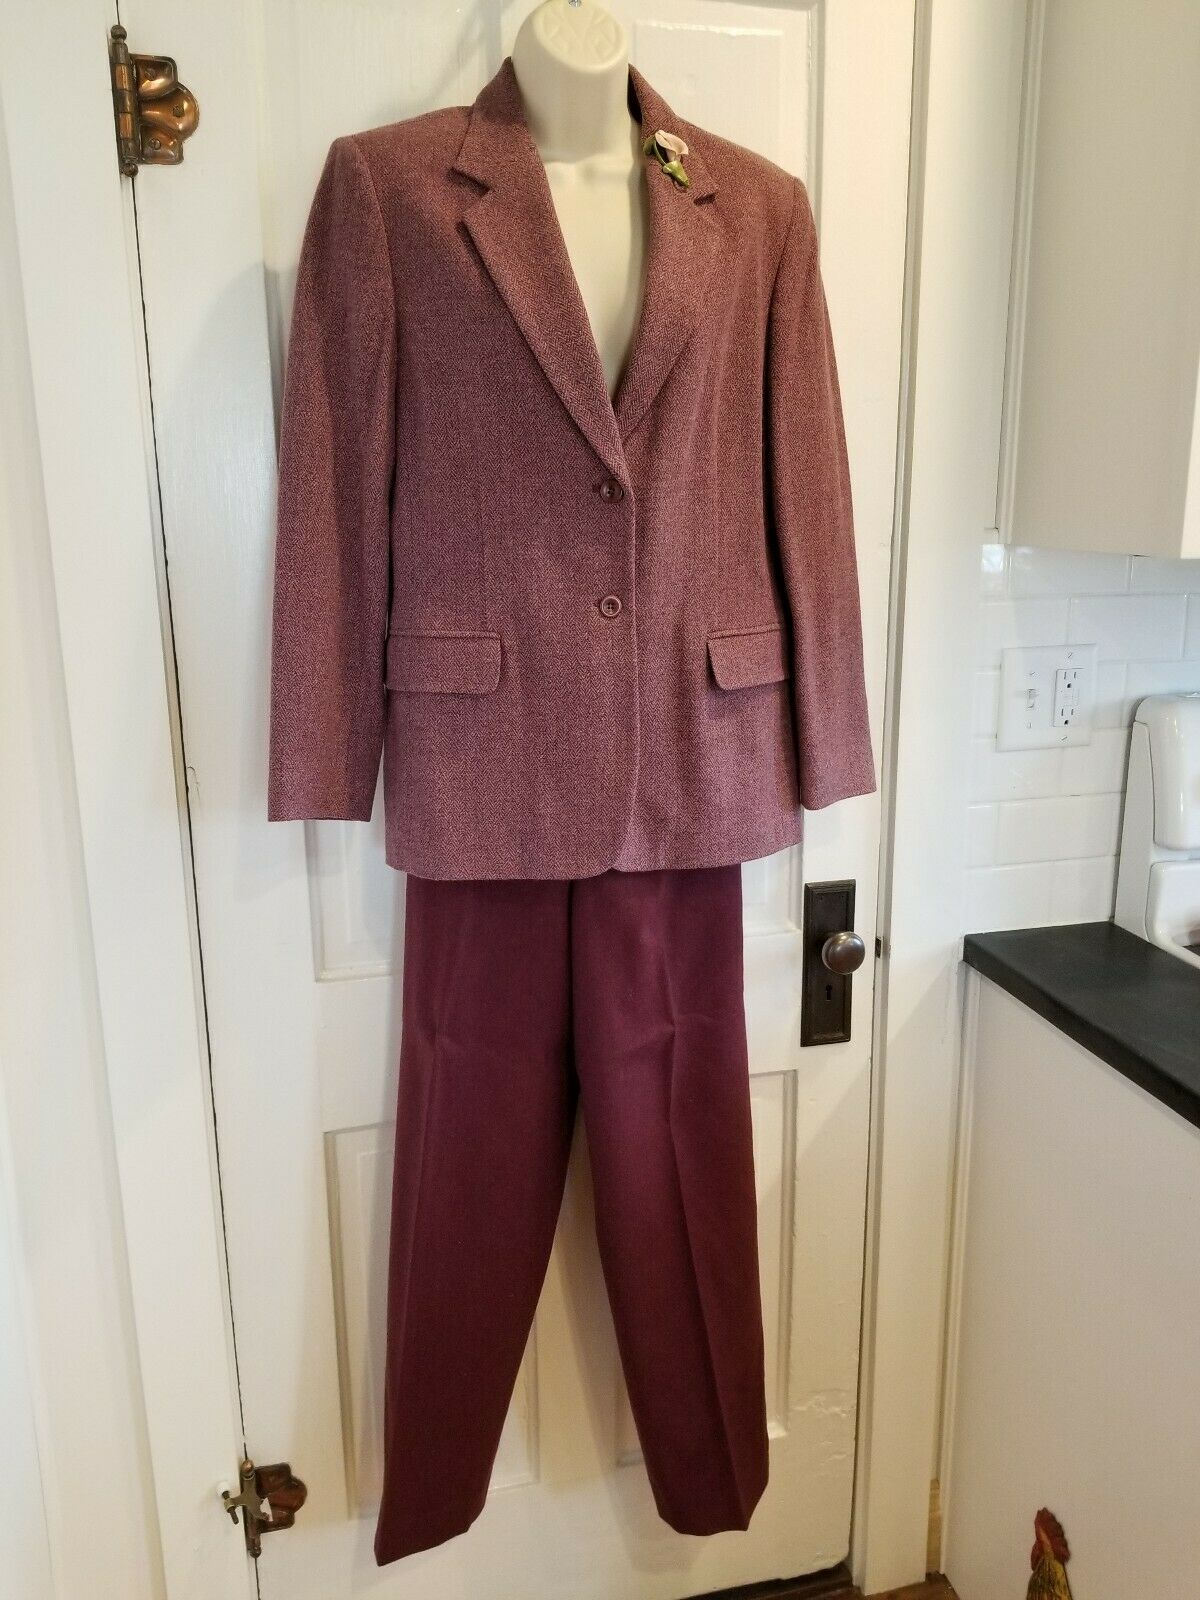 Vintage Pendleton Women's Lined Wool 2 Piece Pant Suit Size 10 and Vintage Pin